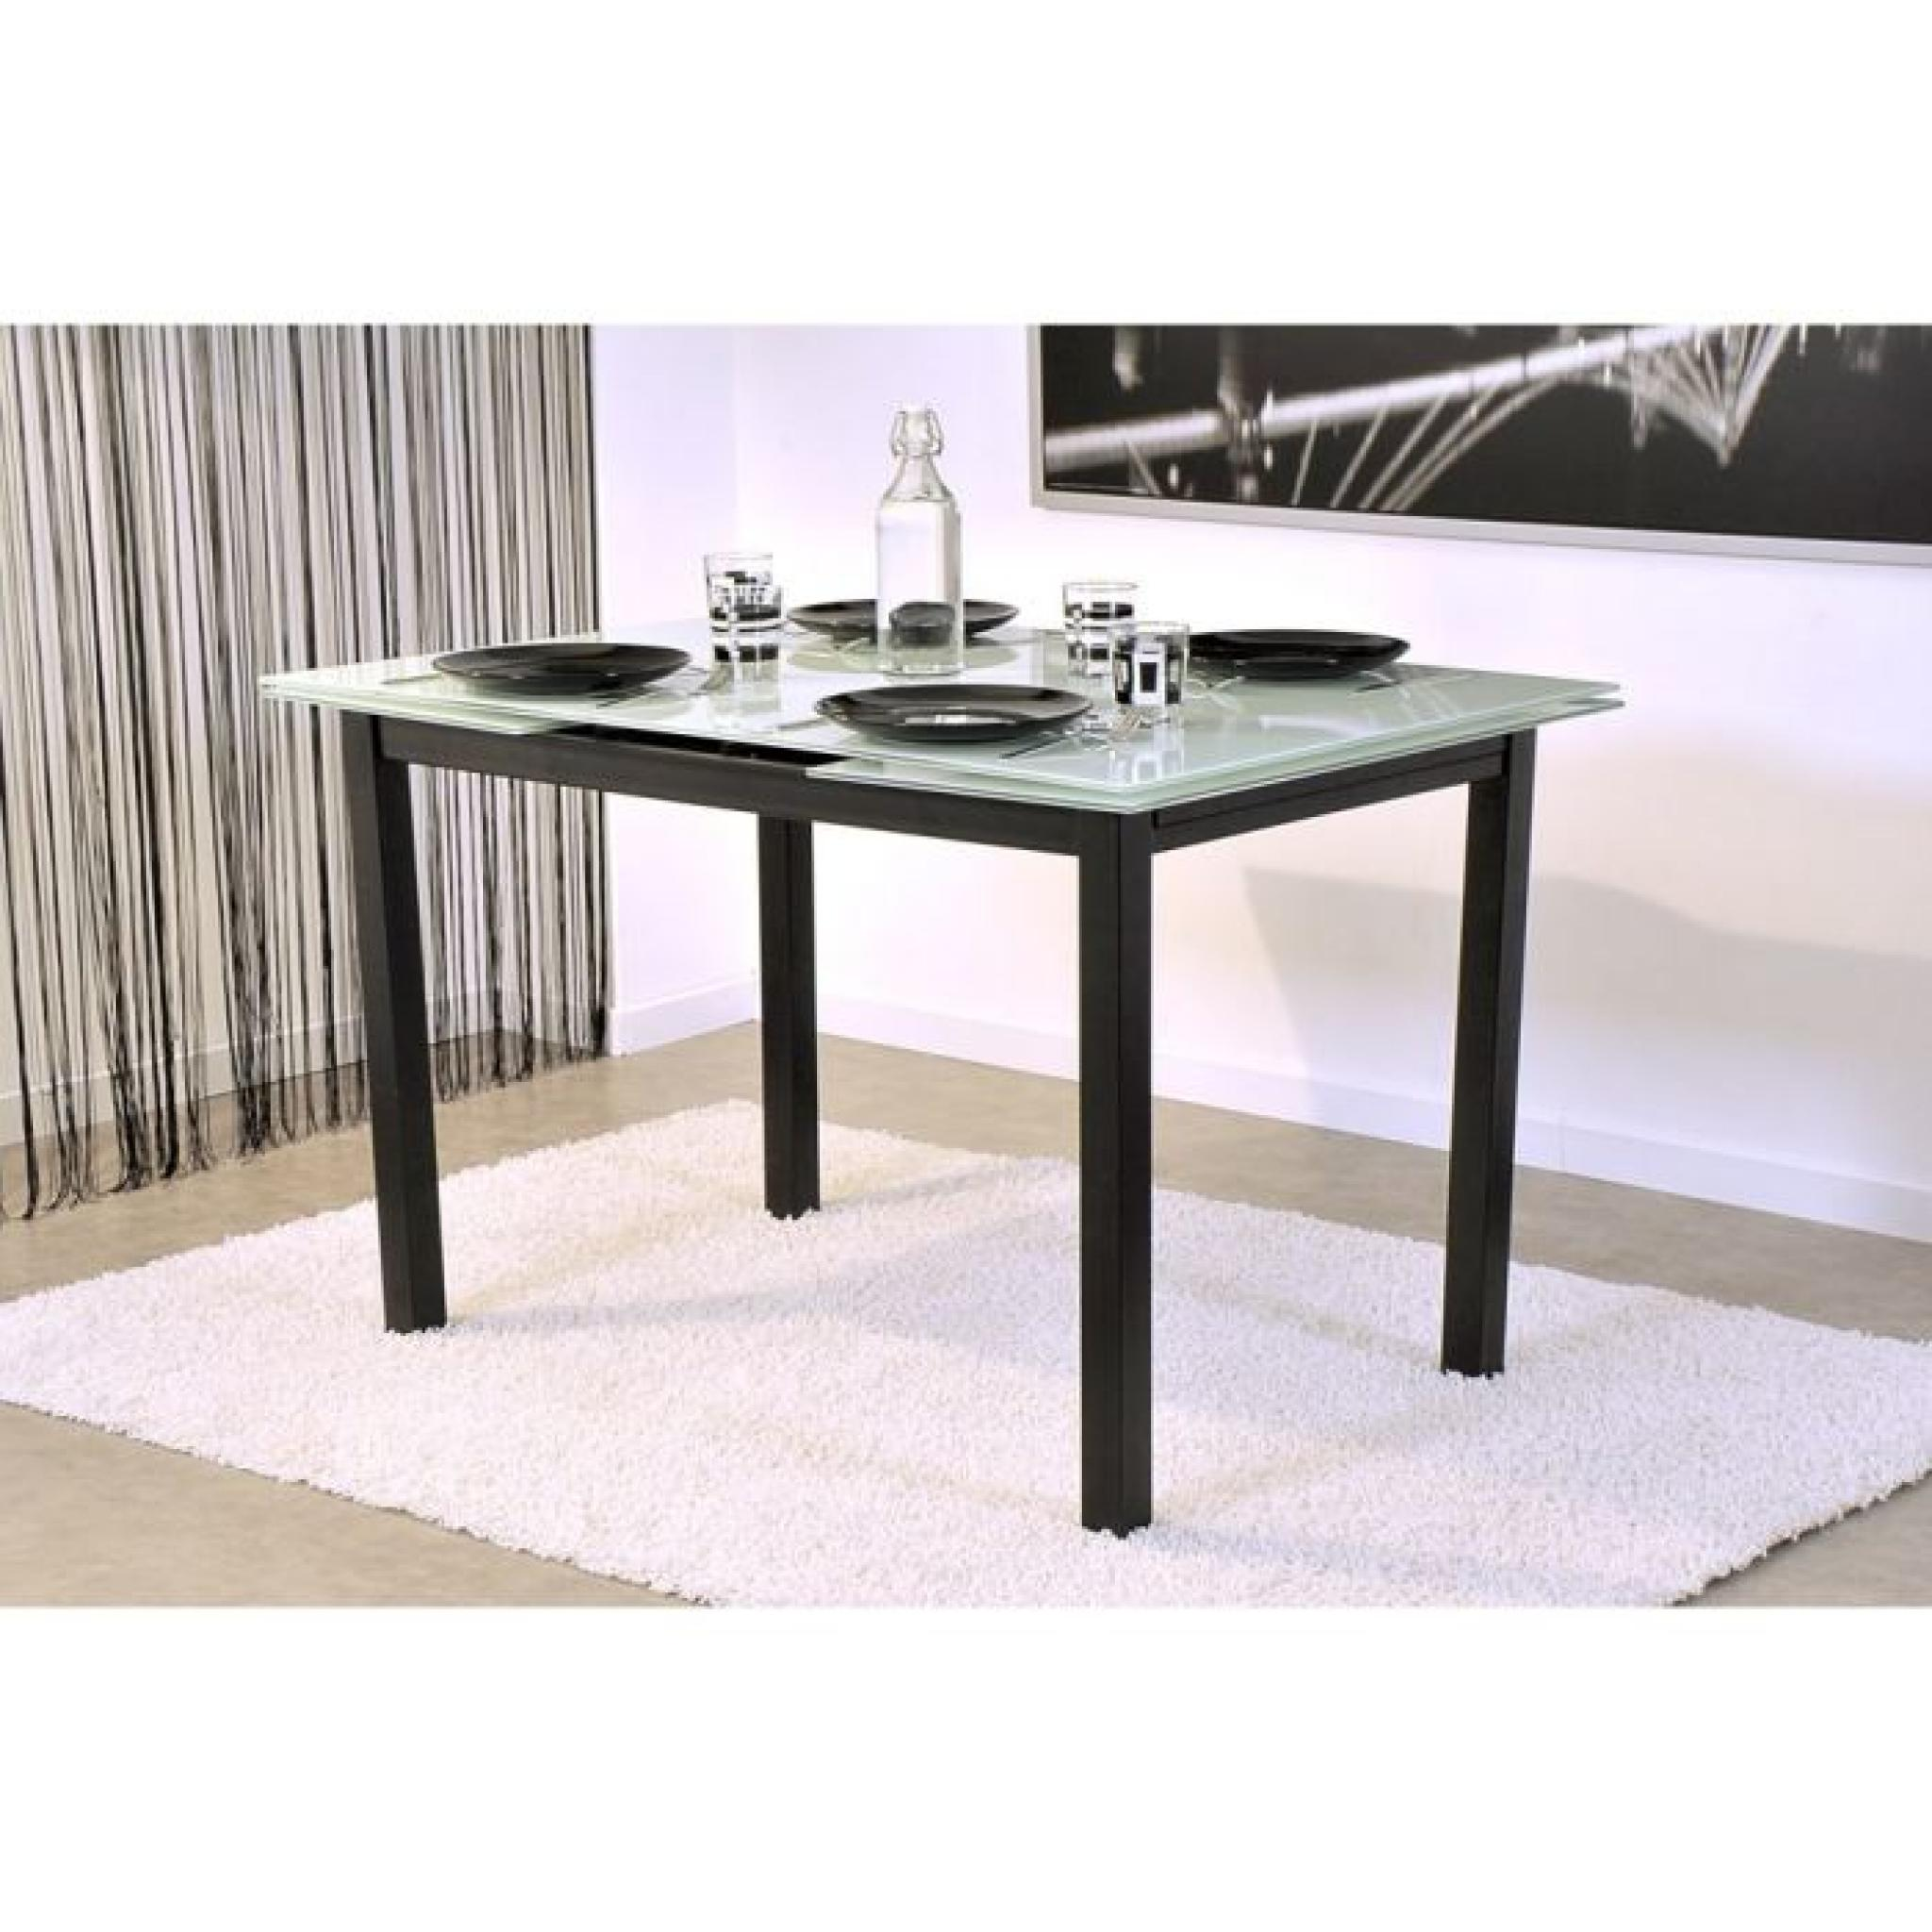 bora table extensible 120 200cm blanche et noire achat vente table salle a manger pas cher. Black Bedroom Furniture Sets. Home Design Ideas